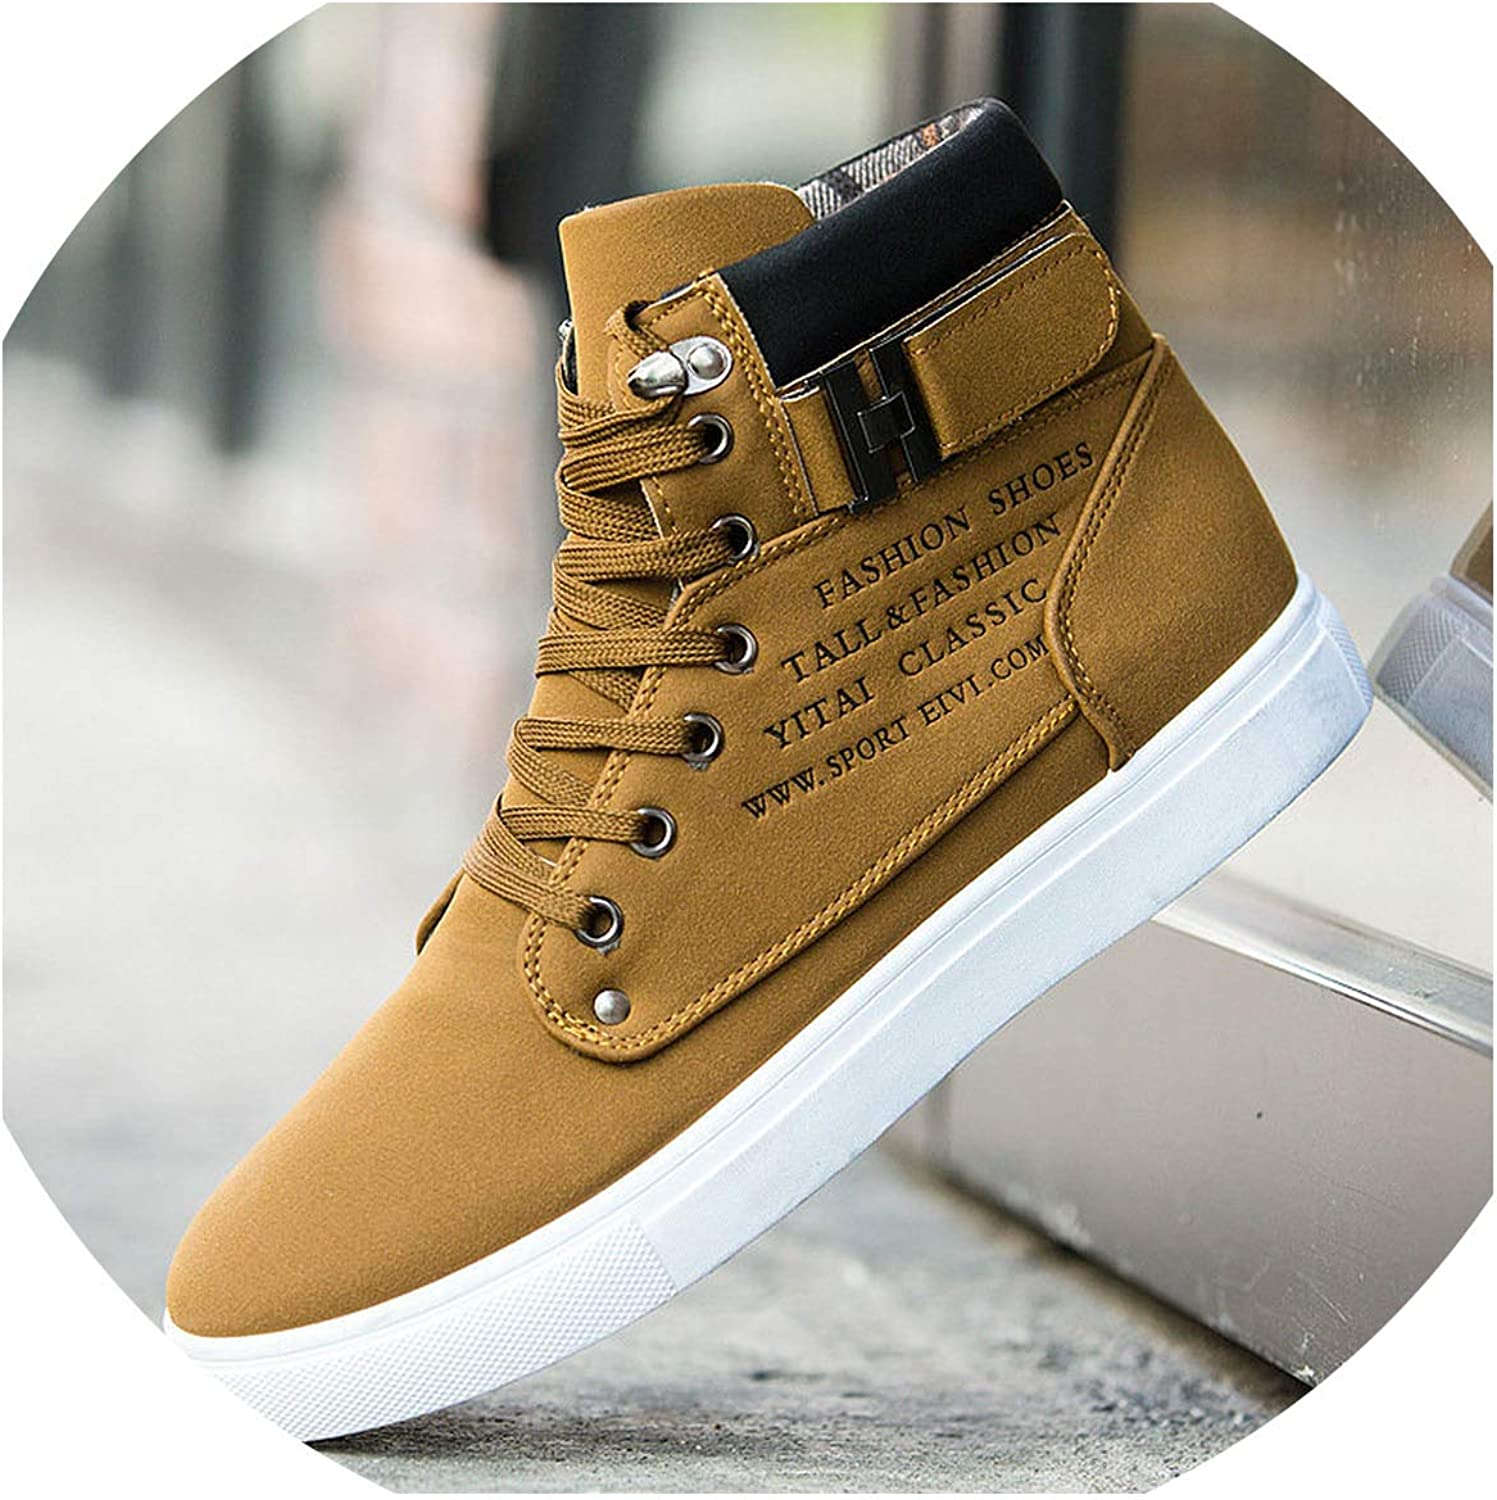 I'll NEVER BE HER Mens shoes Casual Faux Suede High Top Designer Sneakers Men Vintage British Big Size Fashion Spring Men's Casual shoes